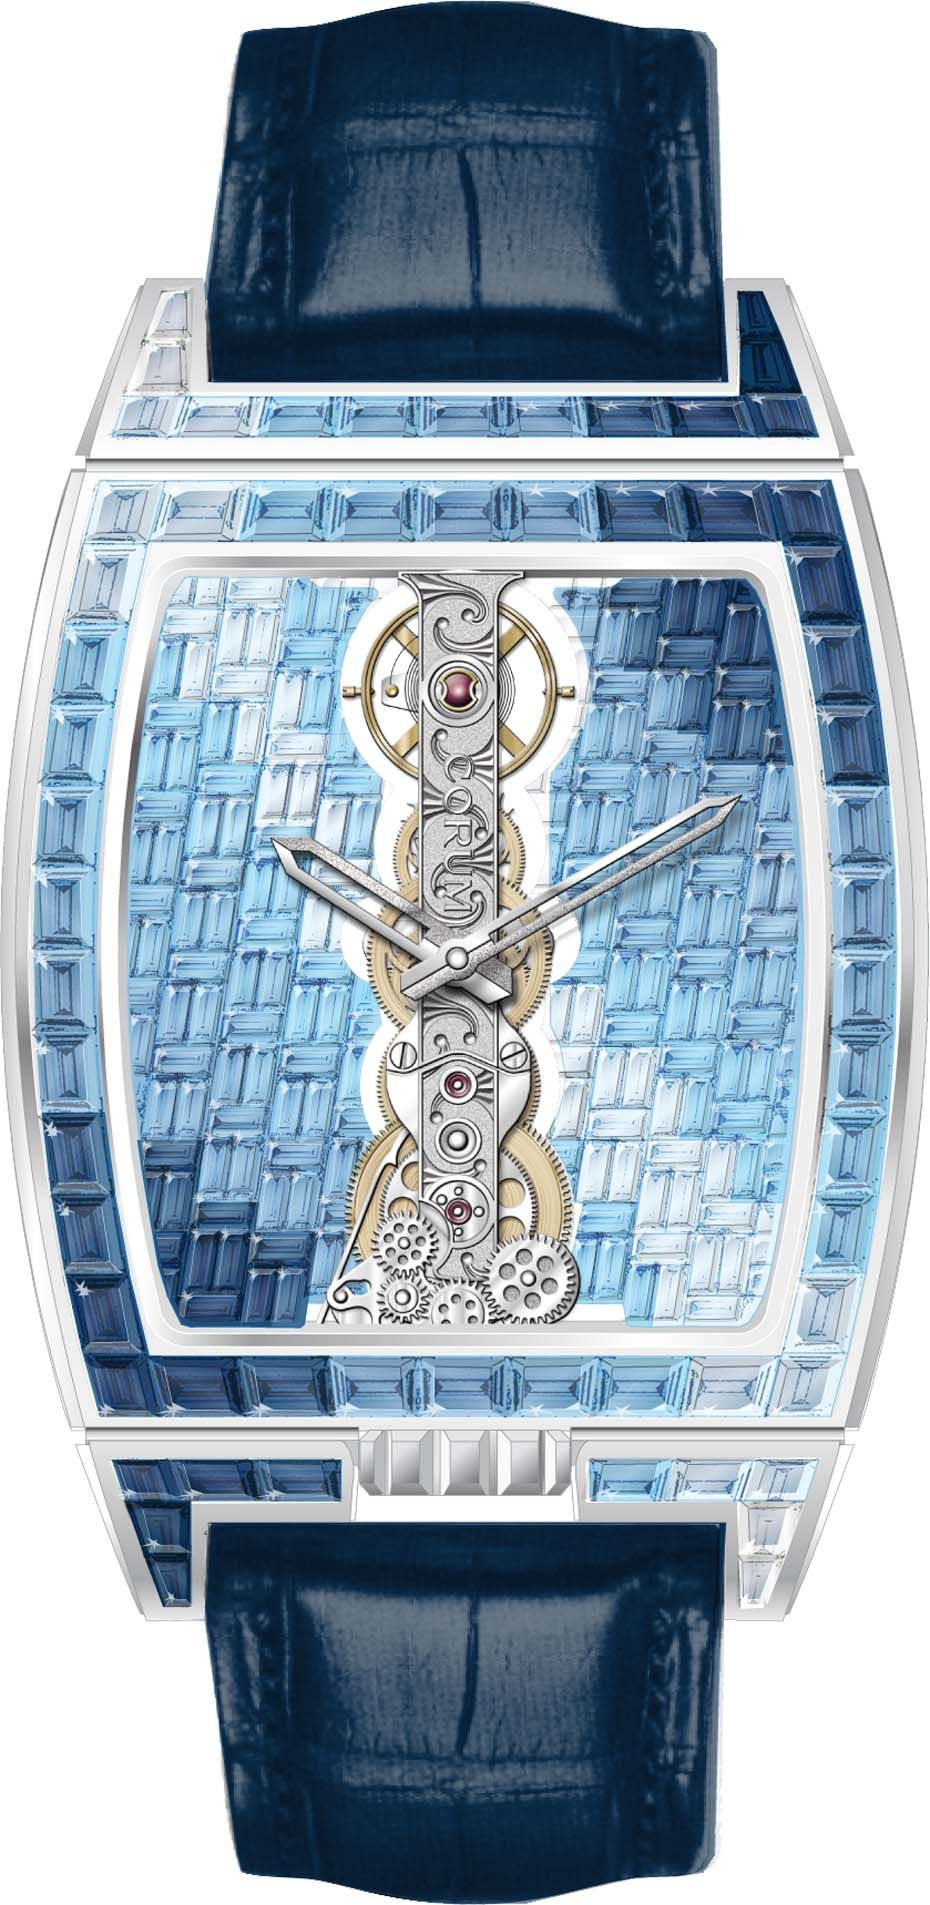 A spectacular interpretation of Corum's Golden Bridge, with the